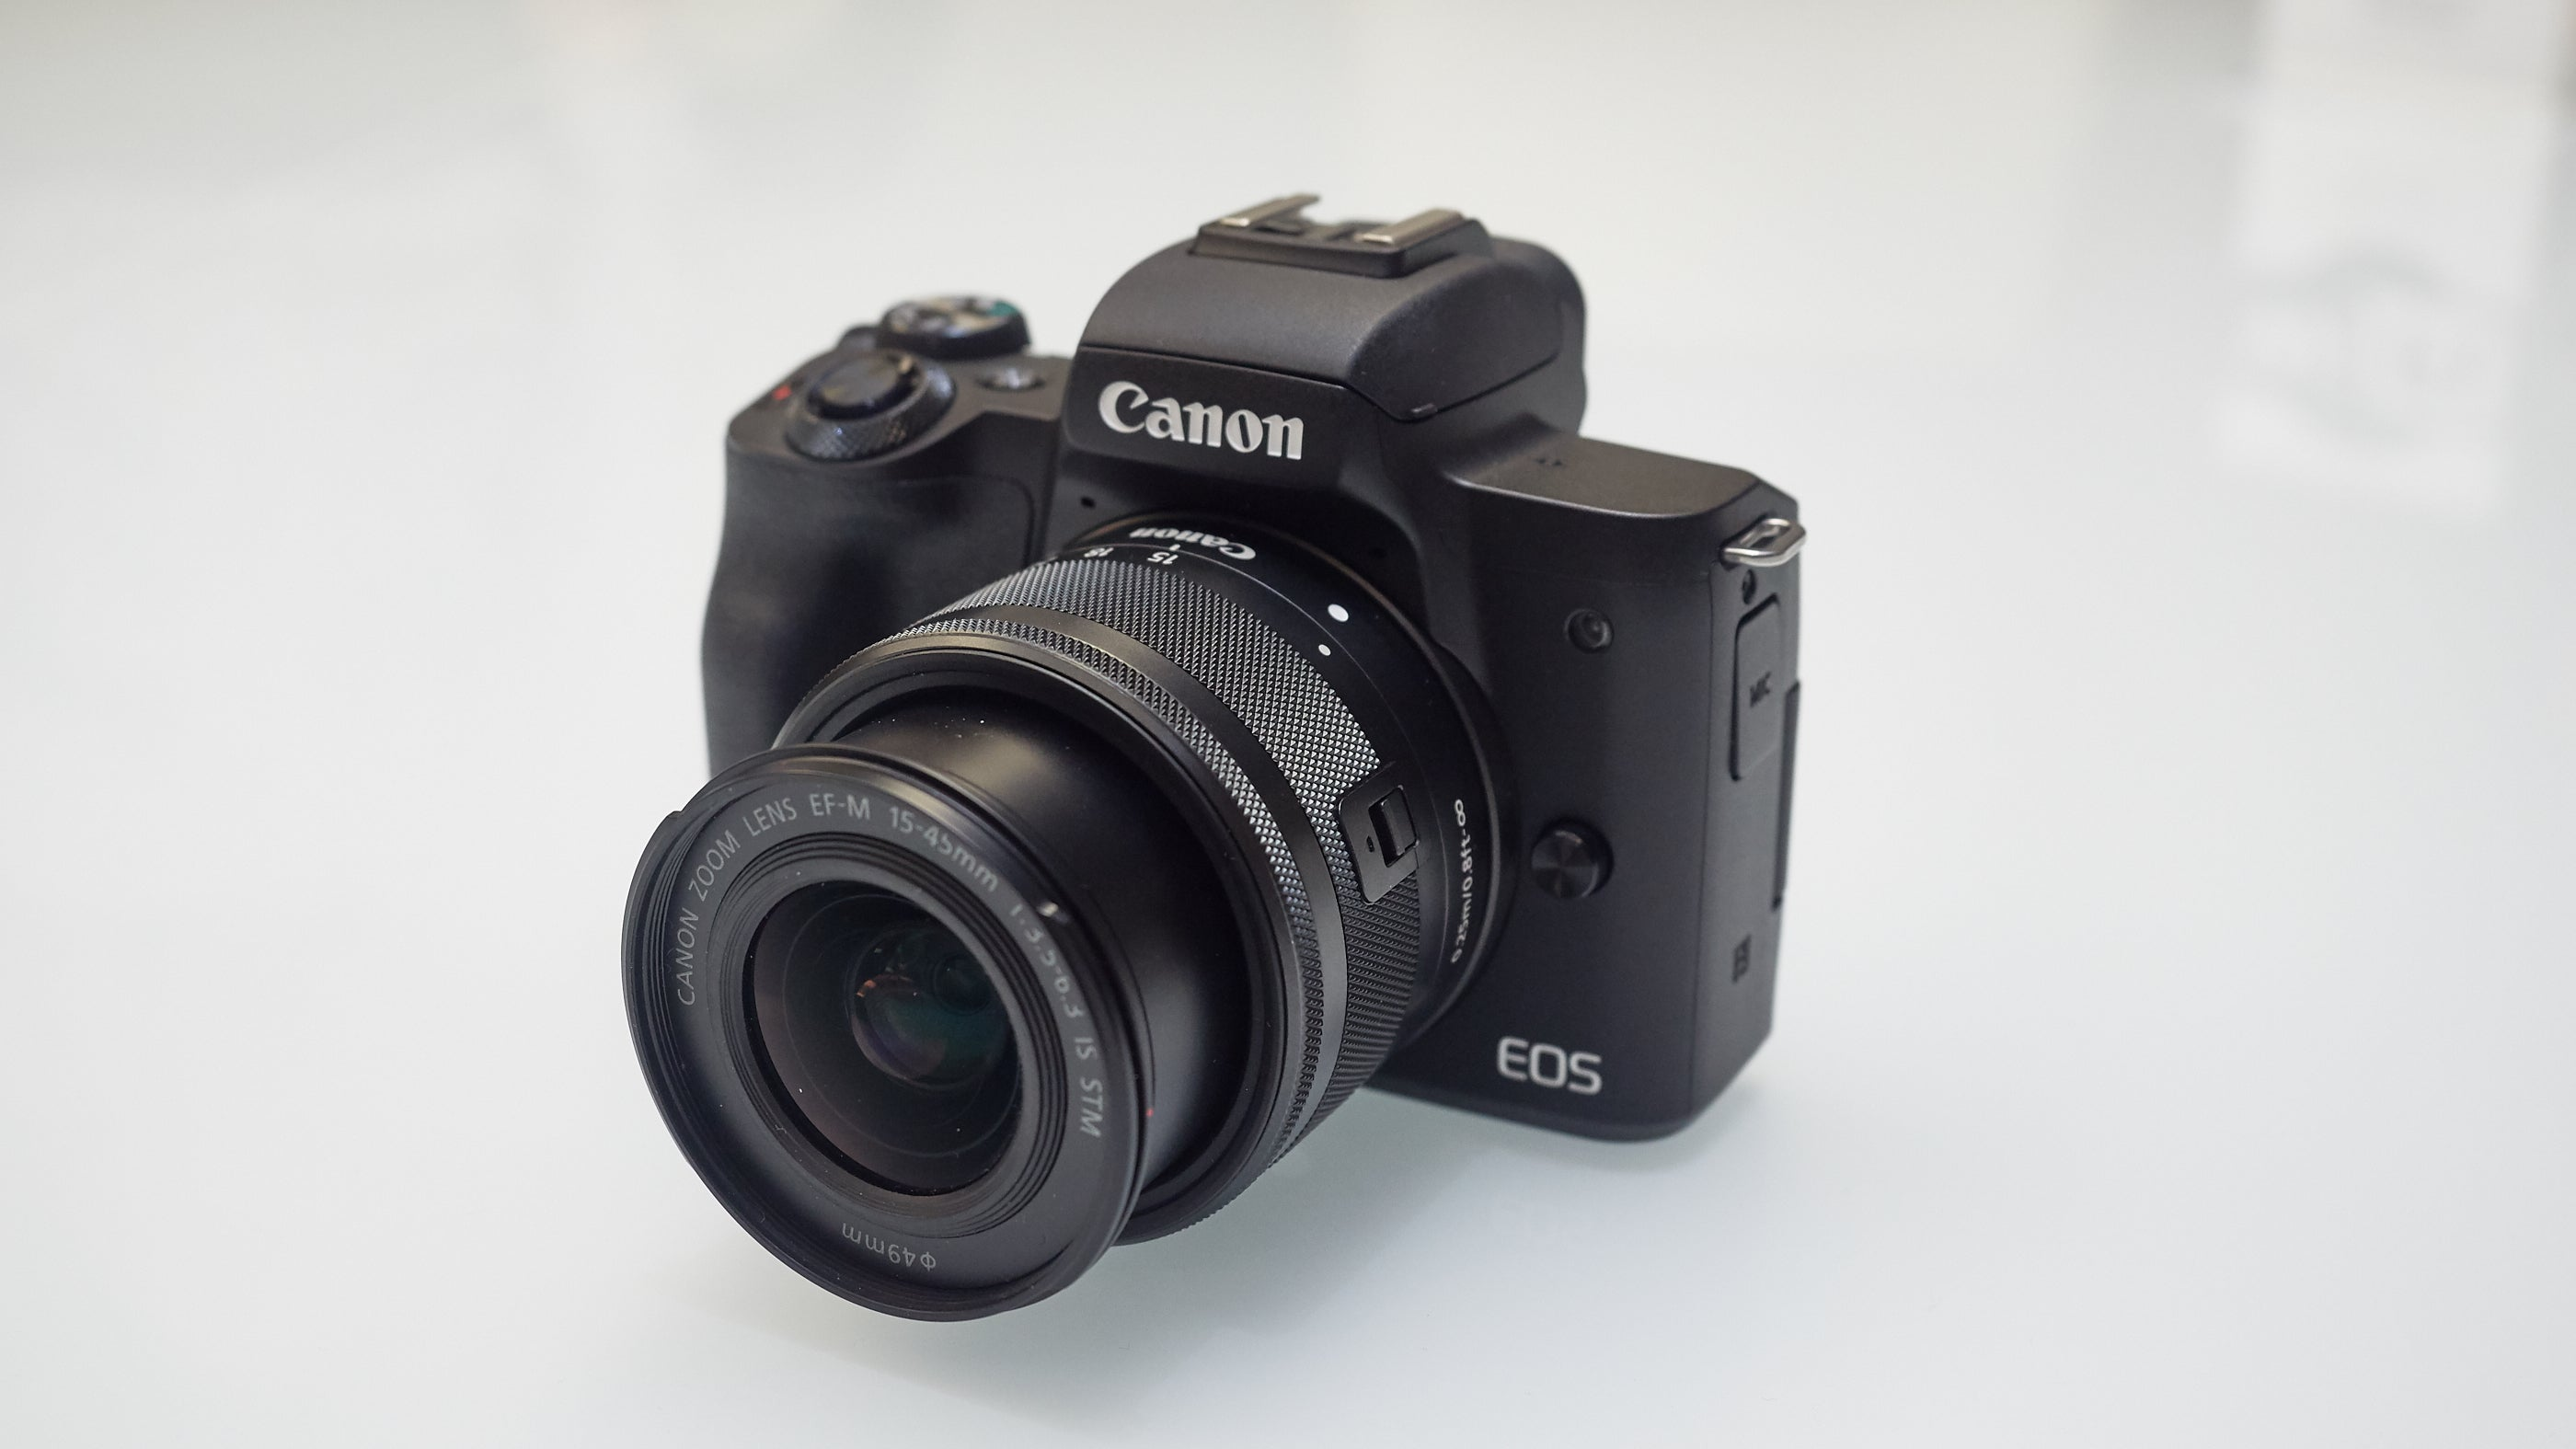 Canon's Next Flash Is Trying to Be Idiot-Proof